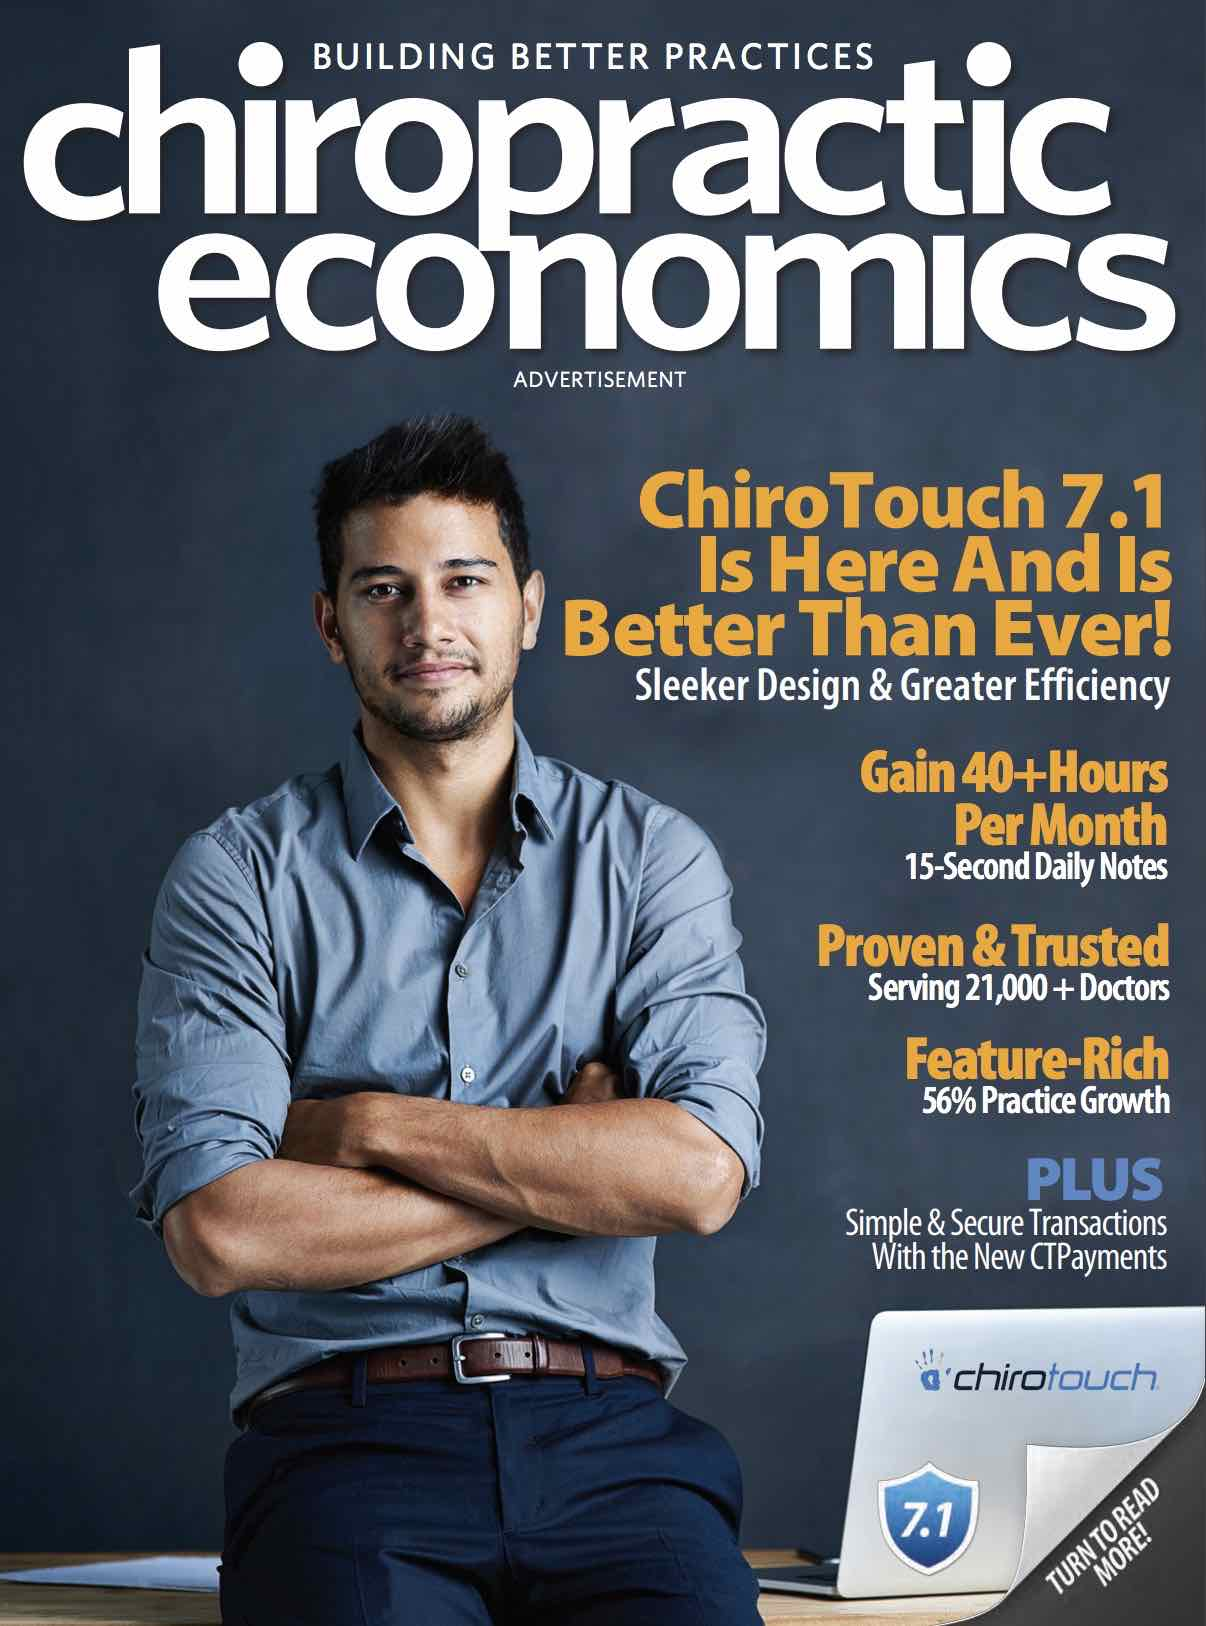 Dr. James Fedich Featured in Chiropractic Economics